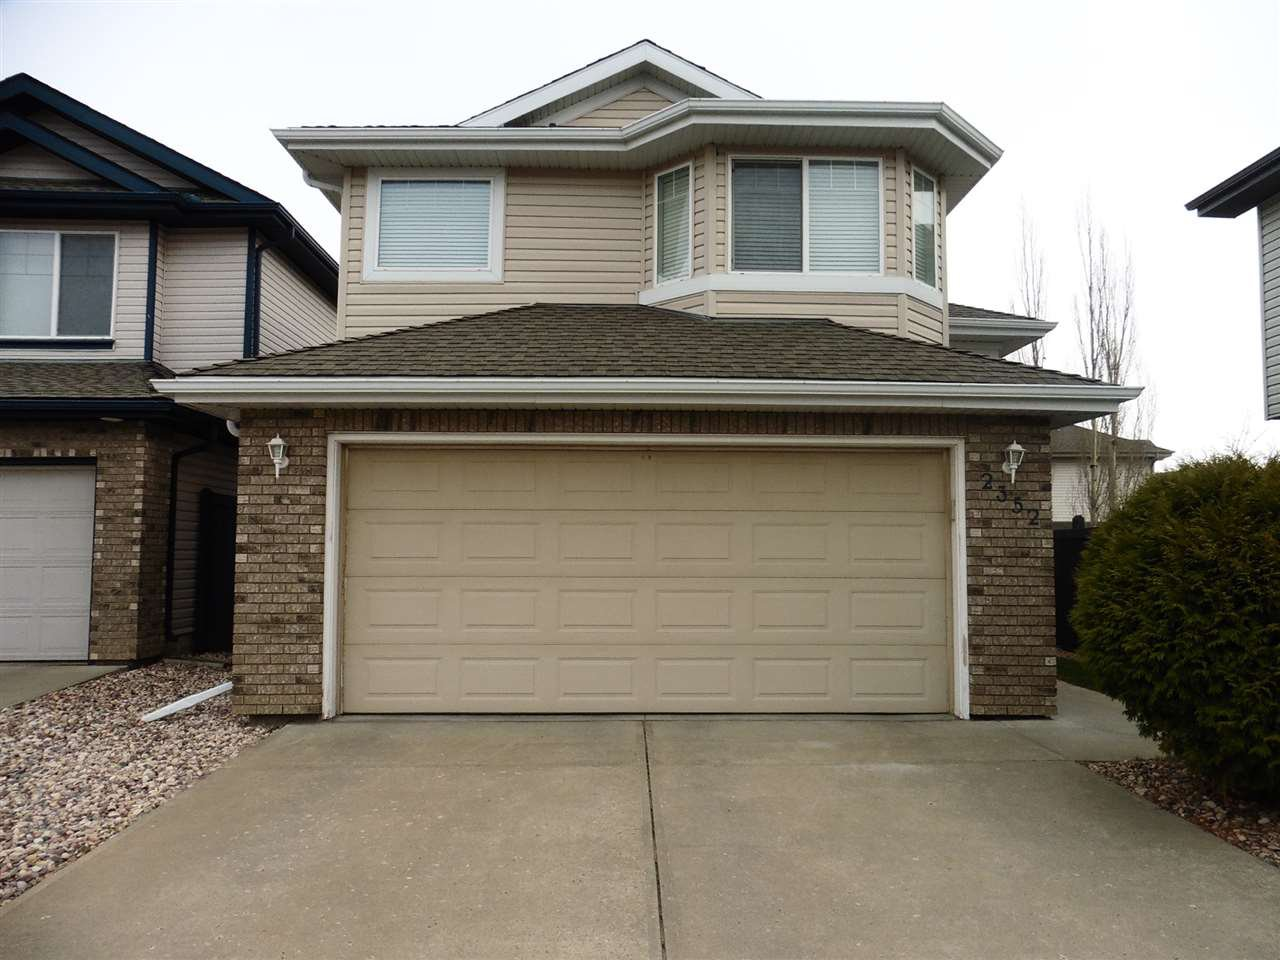 Main Photo: 2352 TAYLOR Close NW in Edmonton: Zone 14 House for sale : MLS®# E4178816